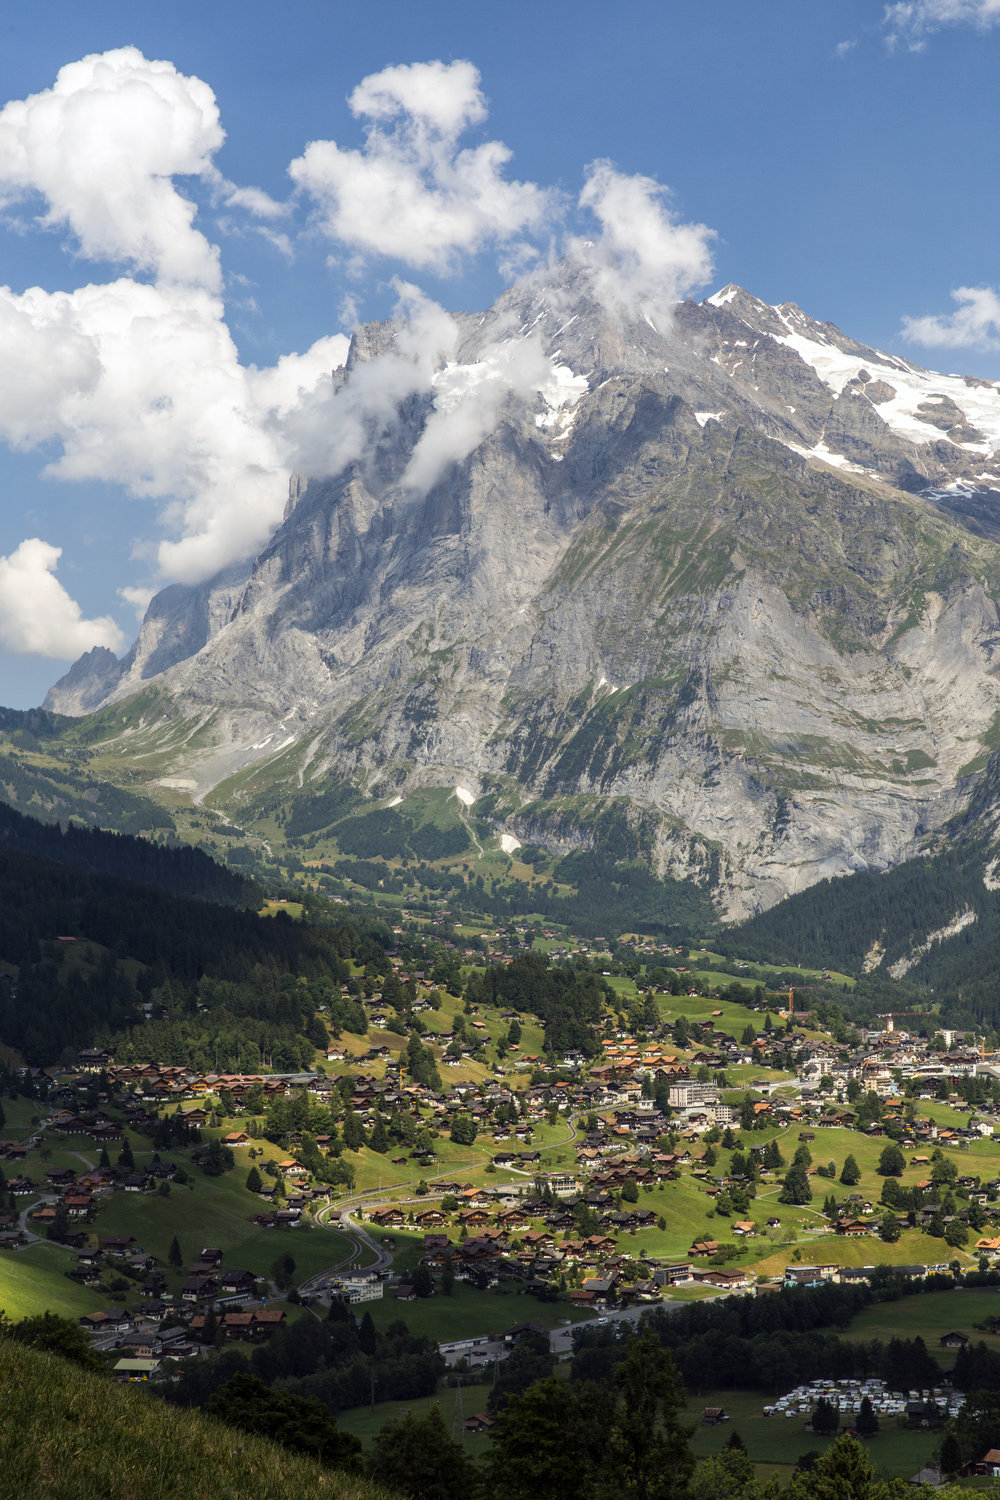 Grindelwald Afternoon (click to enlarge)